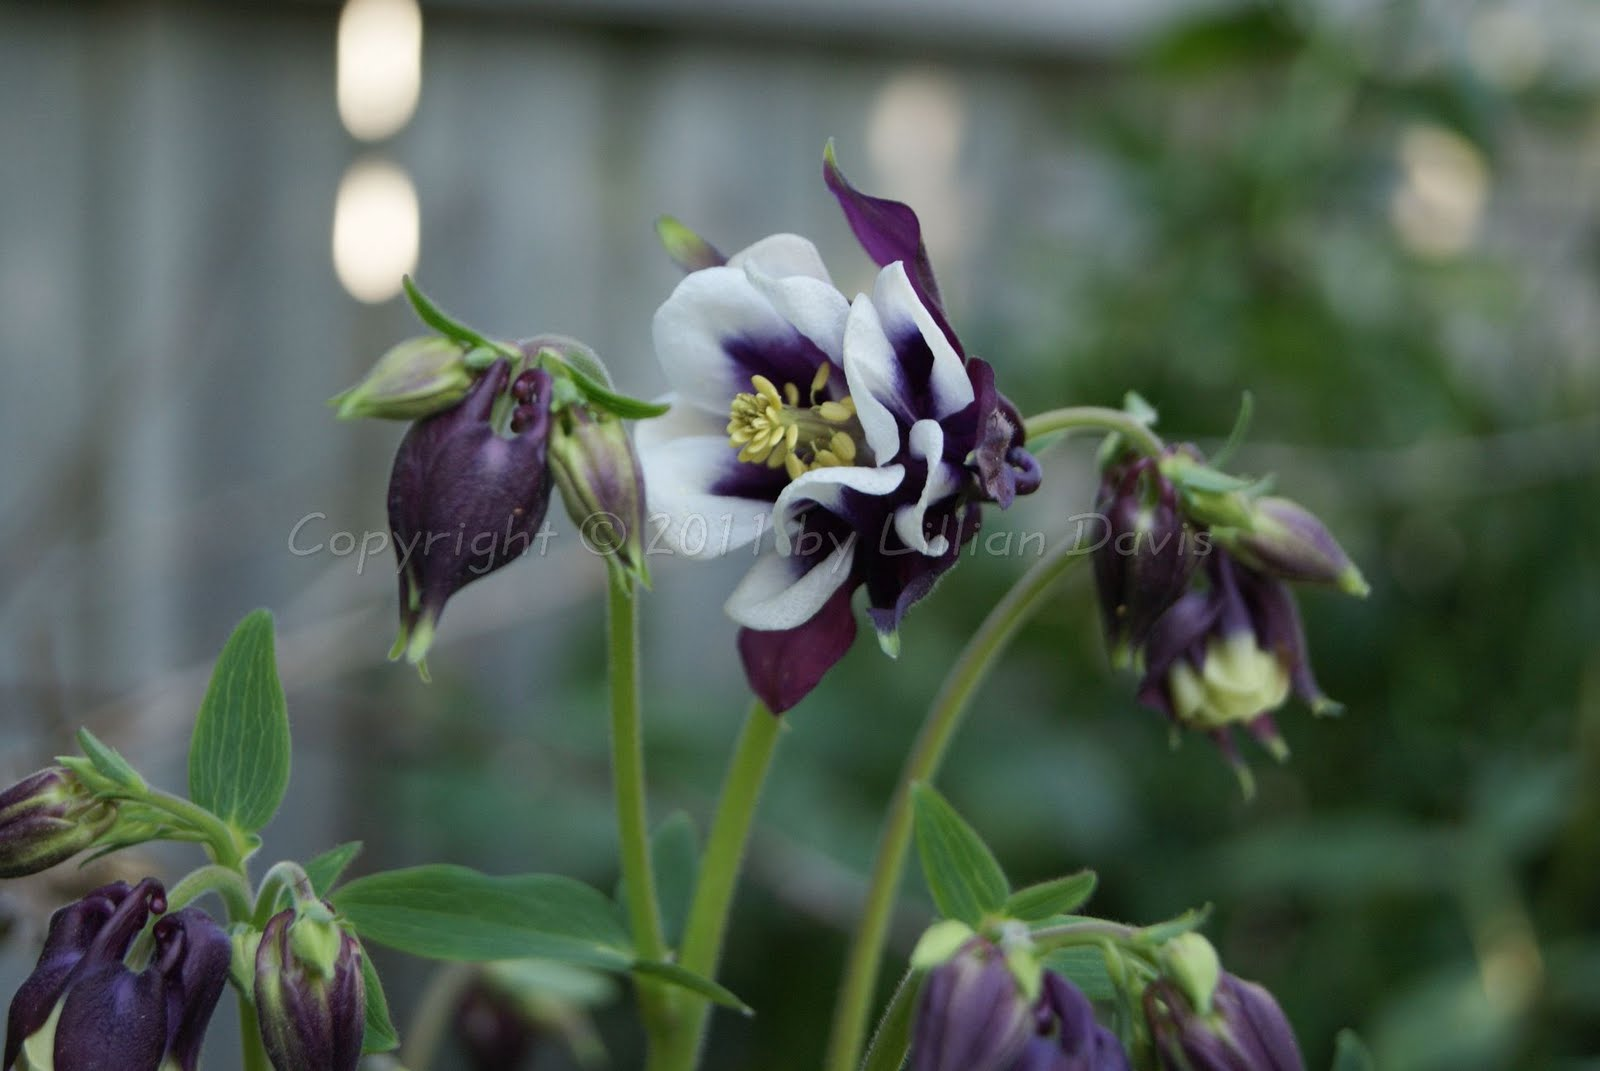 Columbine lils garden tour apparently my magpie a black and white columbine has cross pollinated with granny here and this is the happy result sadly though my grandmas bonnet is izmirmasajfo